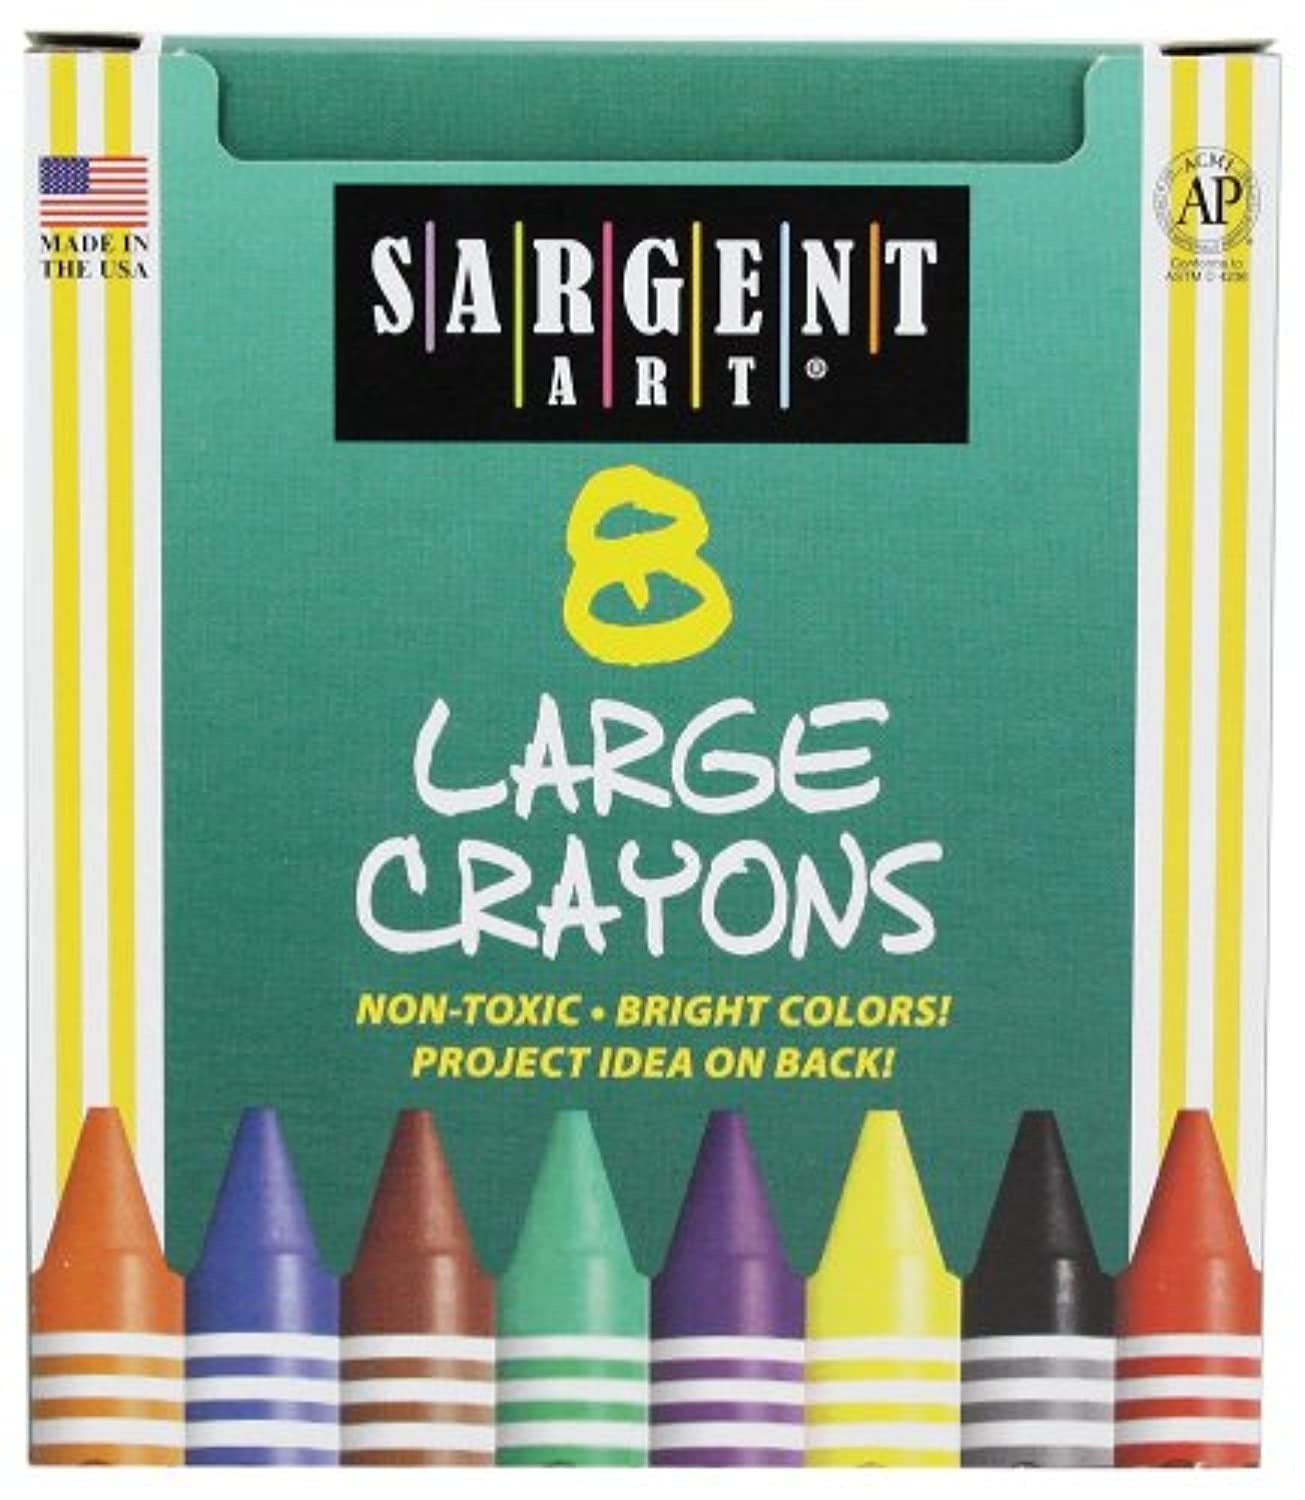 Sargent Art 22-0561 8 Large-Crayons, Tuck Box by Sargent Art